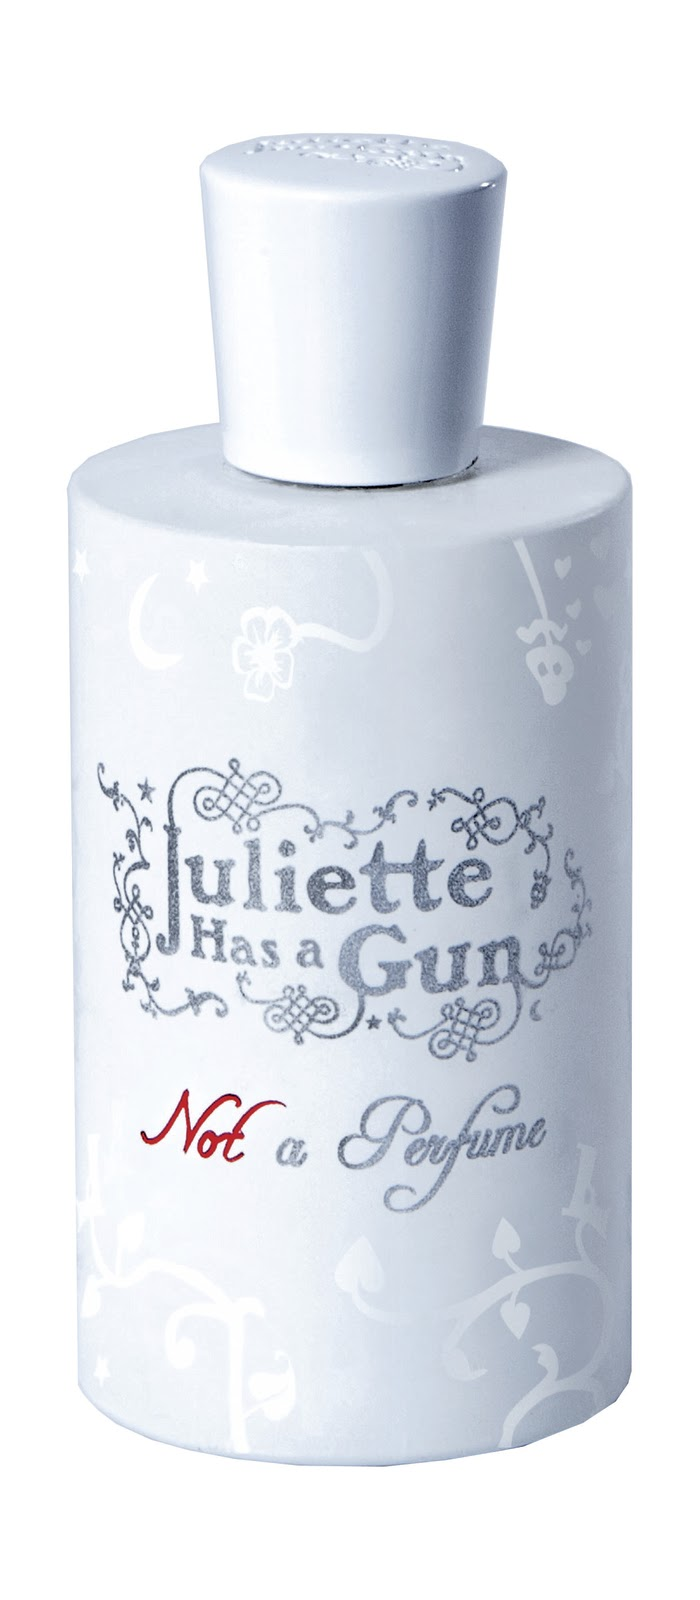 Juliet%2BHas%2BA%2BGun Not%2BA%2BPerfume IS BRITNEY SPEARS PREGNANT? OR DOES SHE JUST HAVE A GUT. June 1, 2008